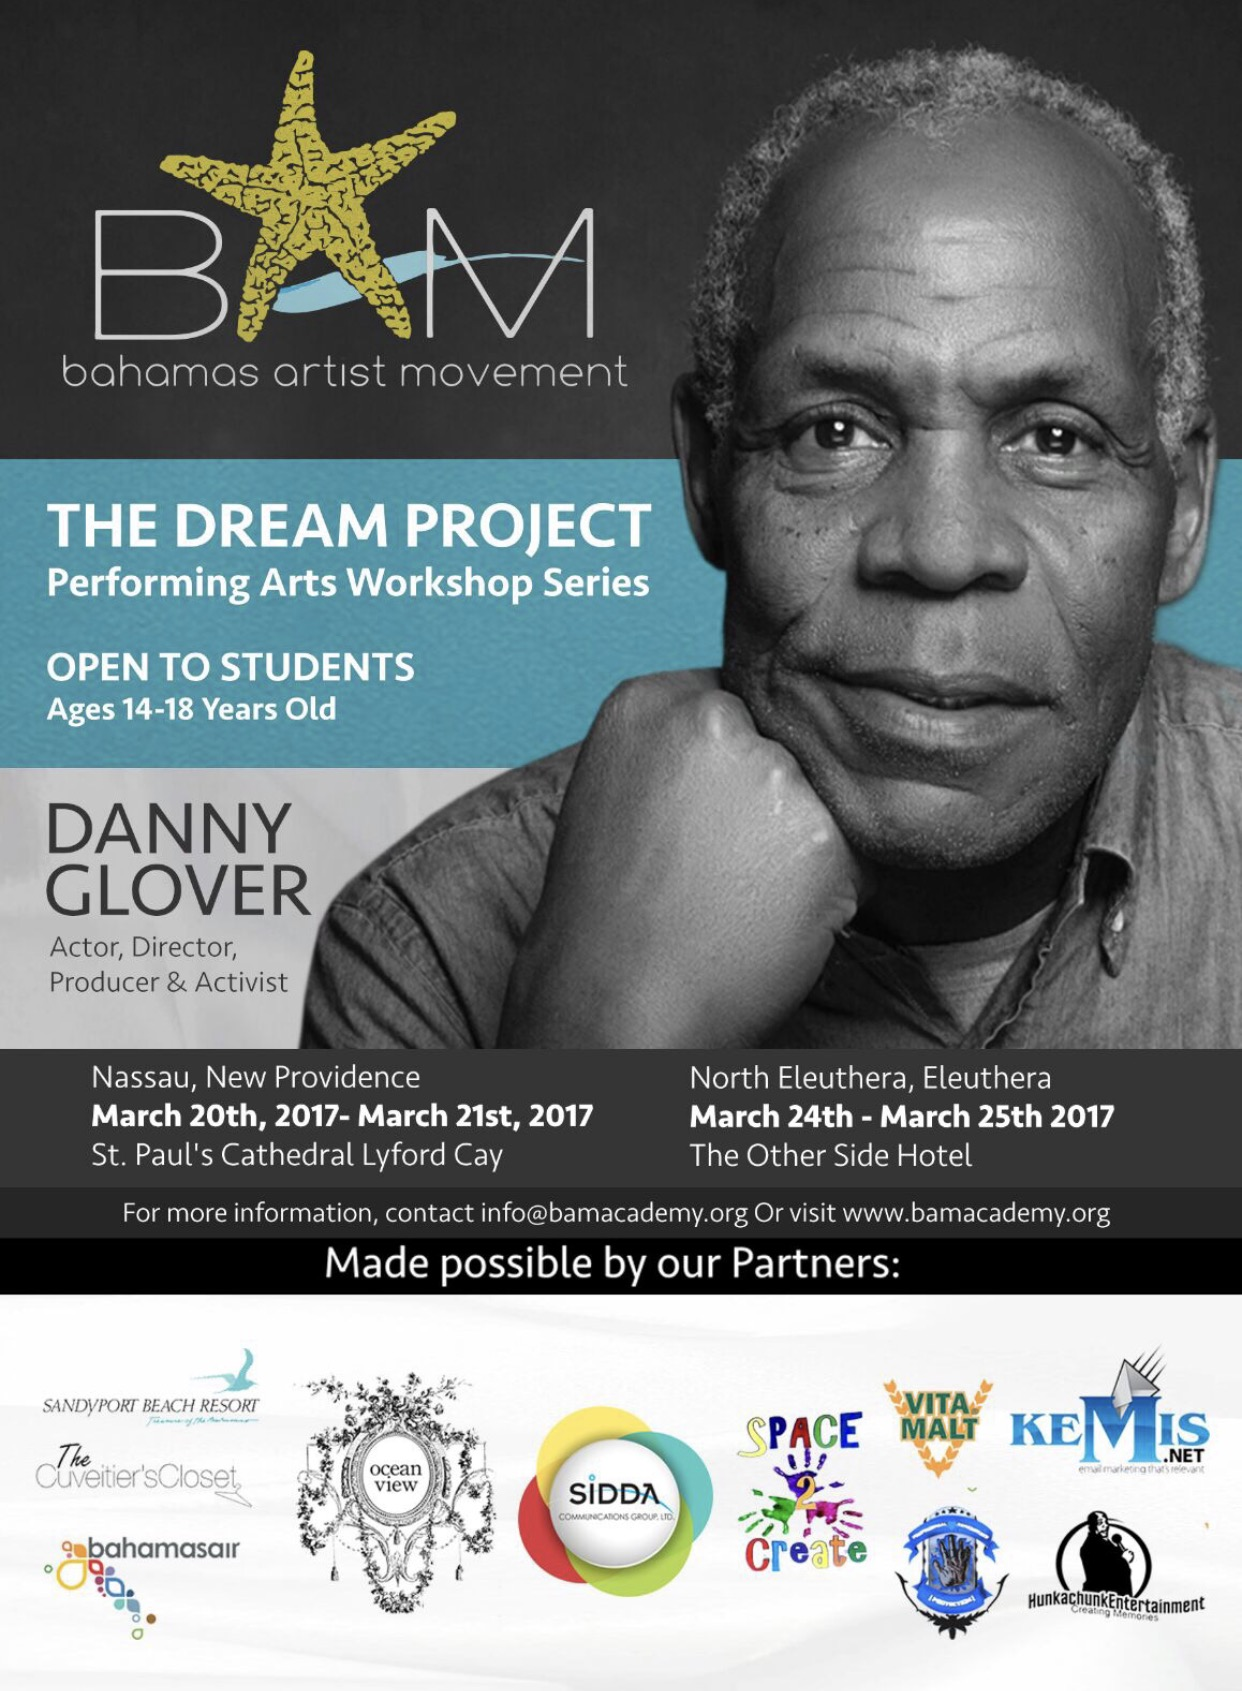 Bahamas Artist Movement 2017 The Dream Project Launch